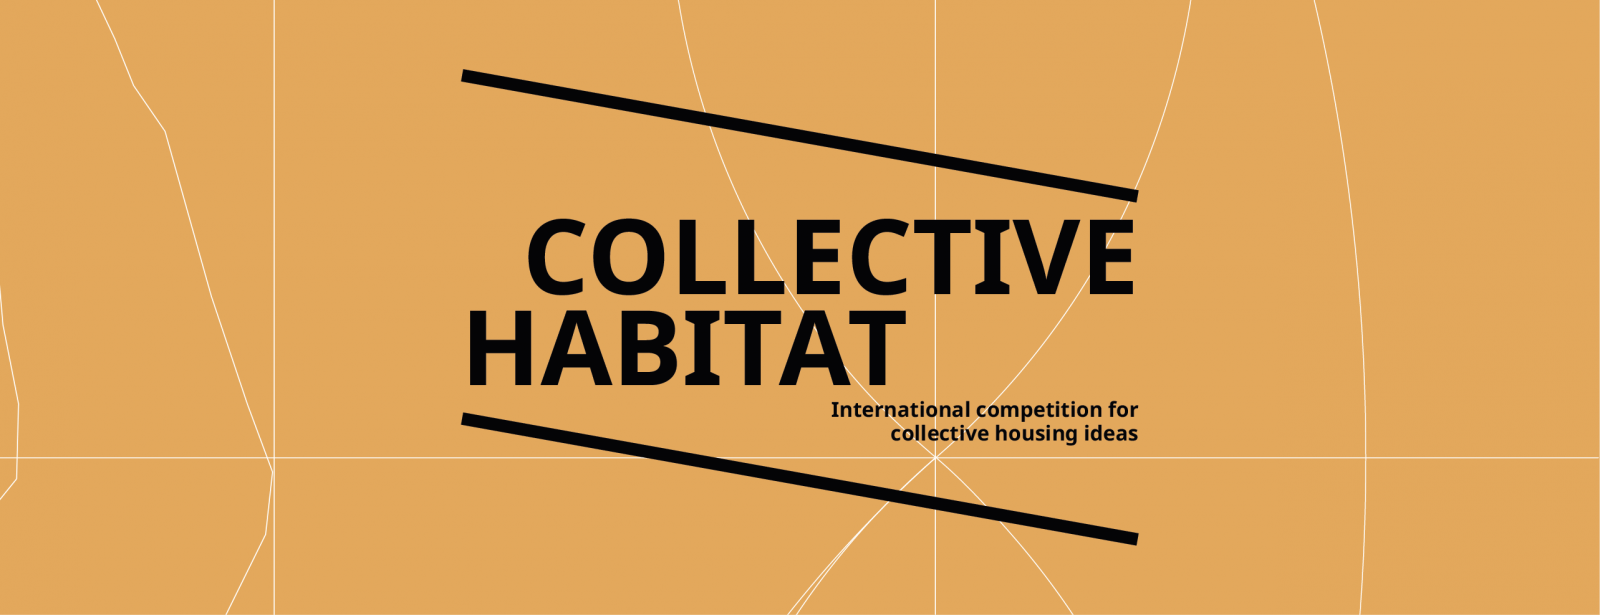 Collective Habitat is a competition